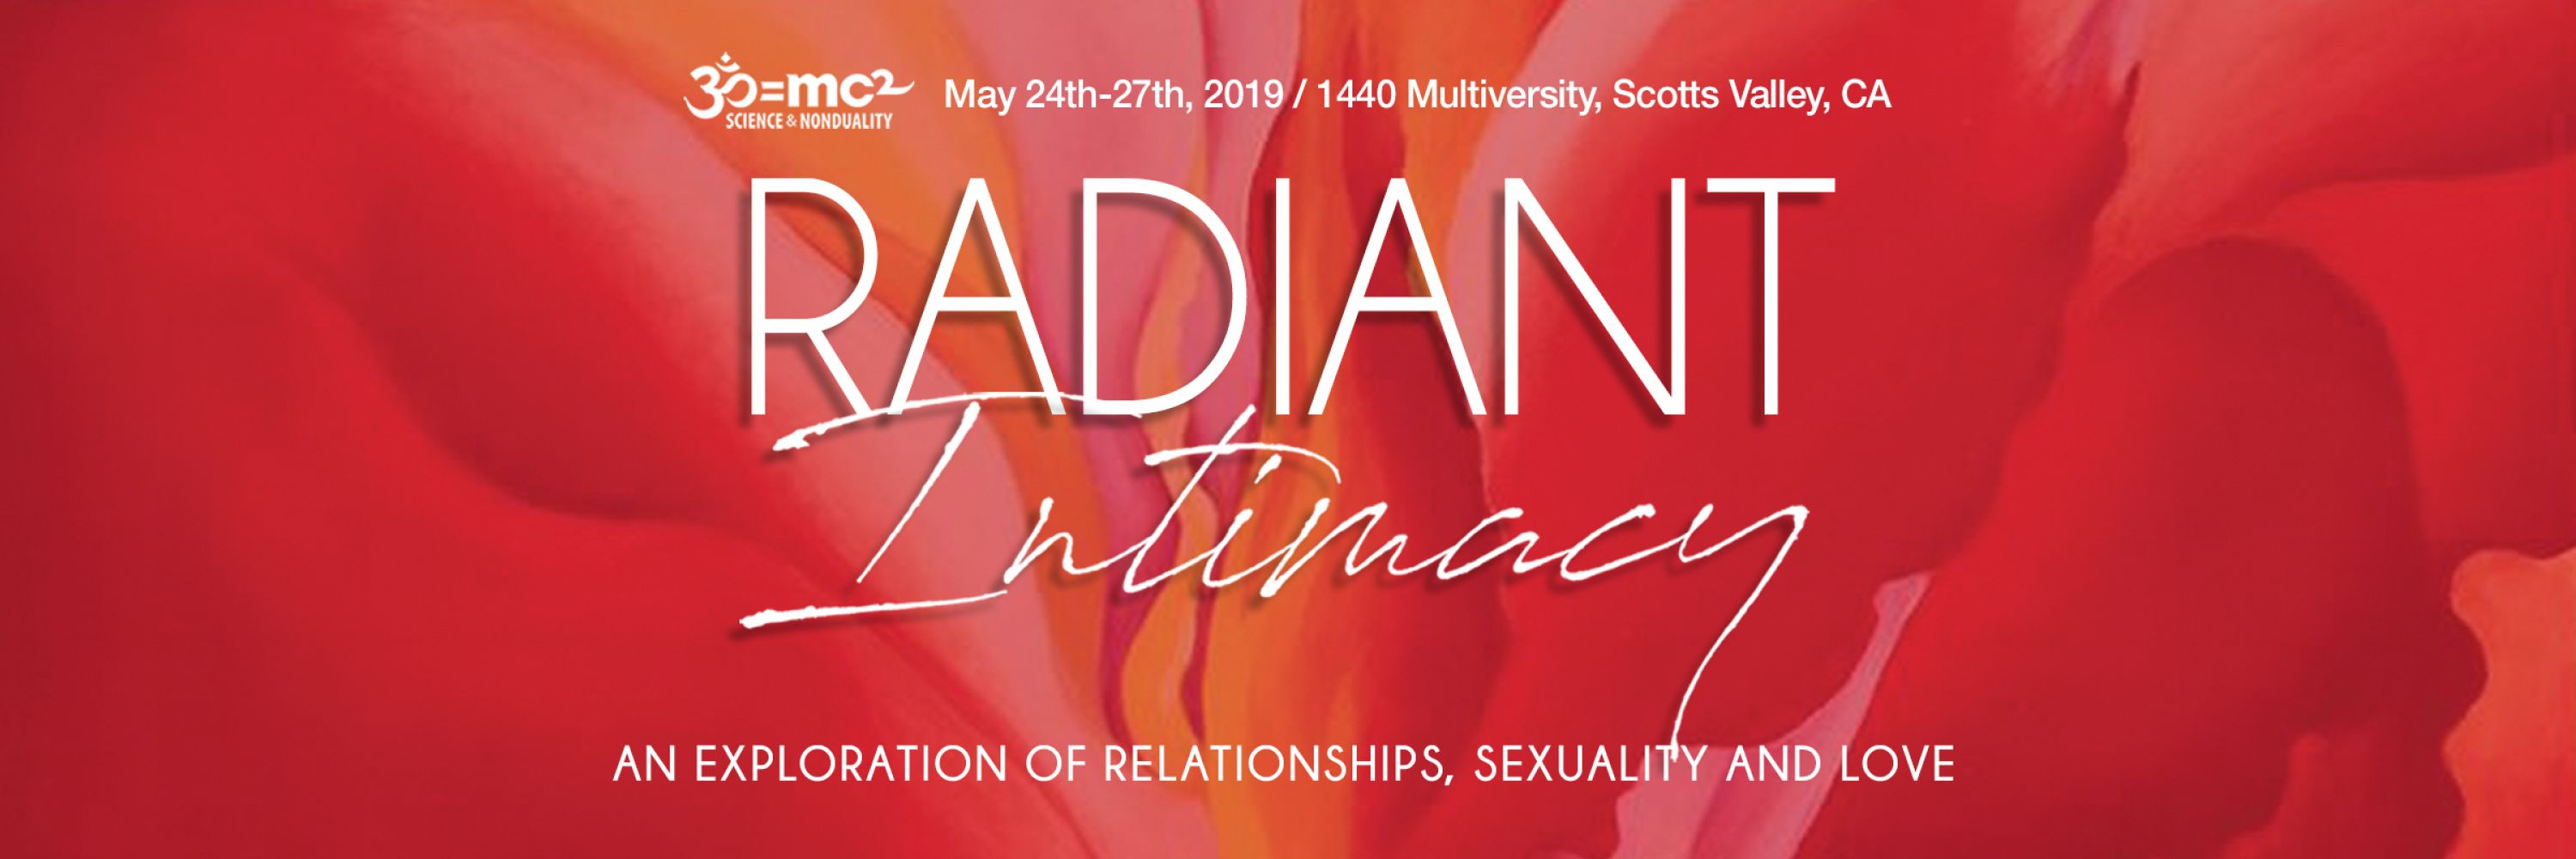 Radiant Intimacy 2019